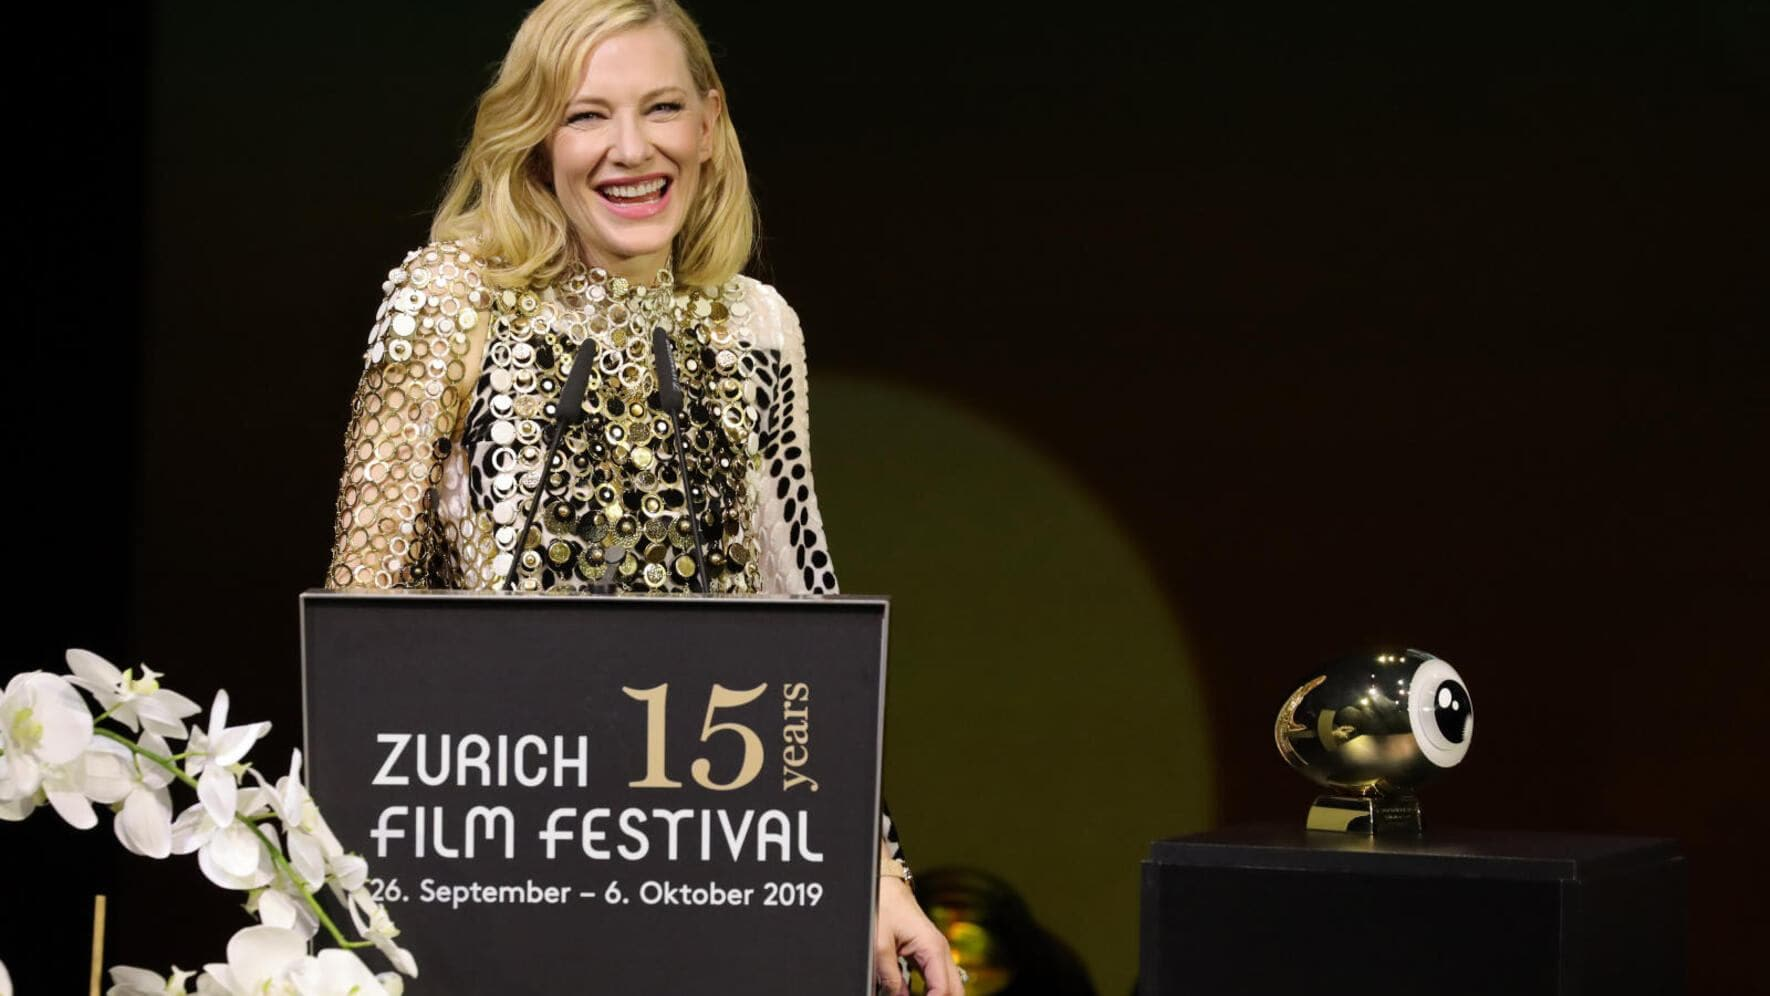 ZURICH, SWITZERLAND - OCTOBER 05: Cate Blanchett speaks on stage after receiving the ZFF Golden Icon Award at the Award Night Ceremony of the 15th Zurich Film Festival at Opera House on October 05, 2019 in Zurich, Switzerland. (Photo by Andreas Rentz/Getty Images for ZFF)